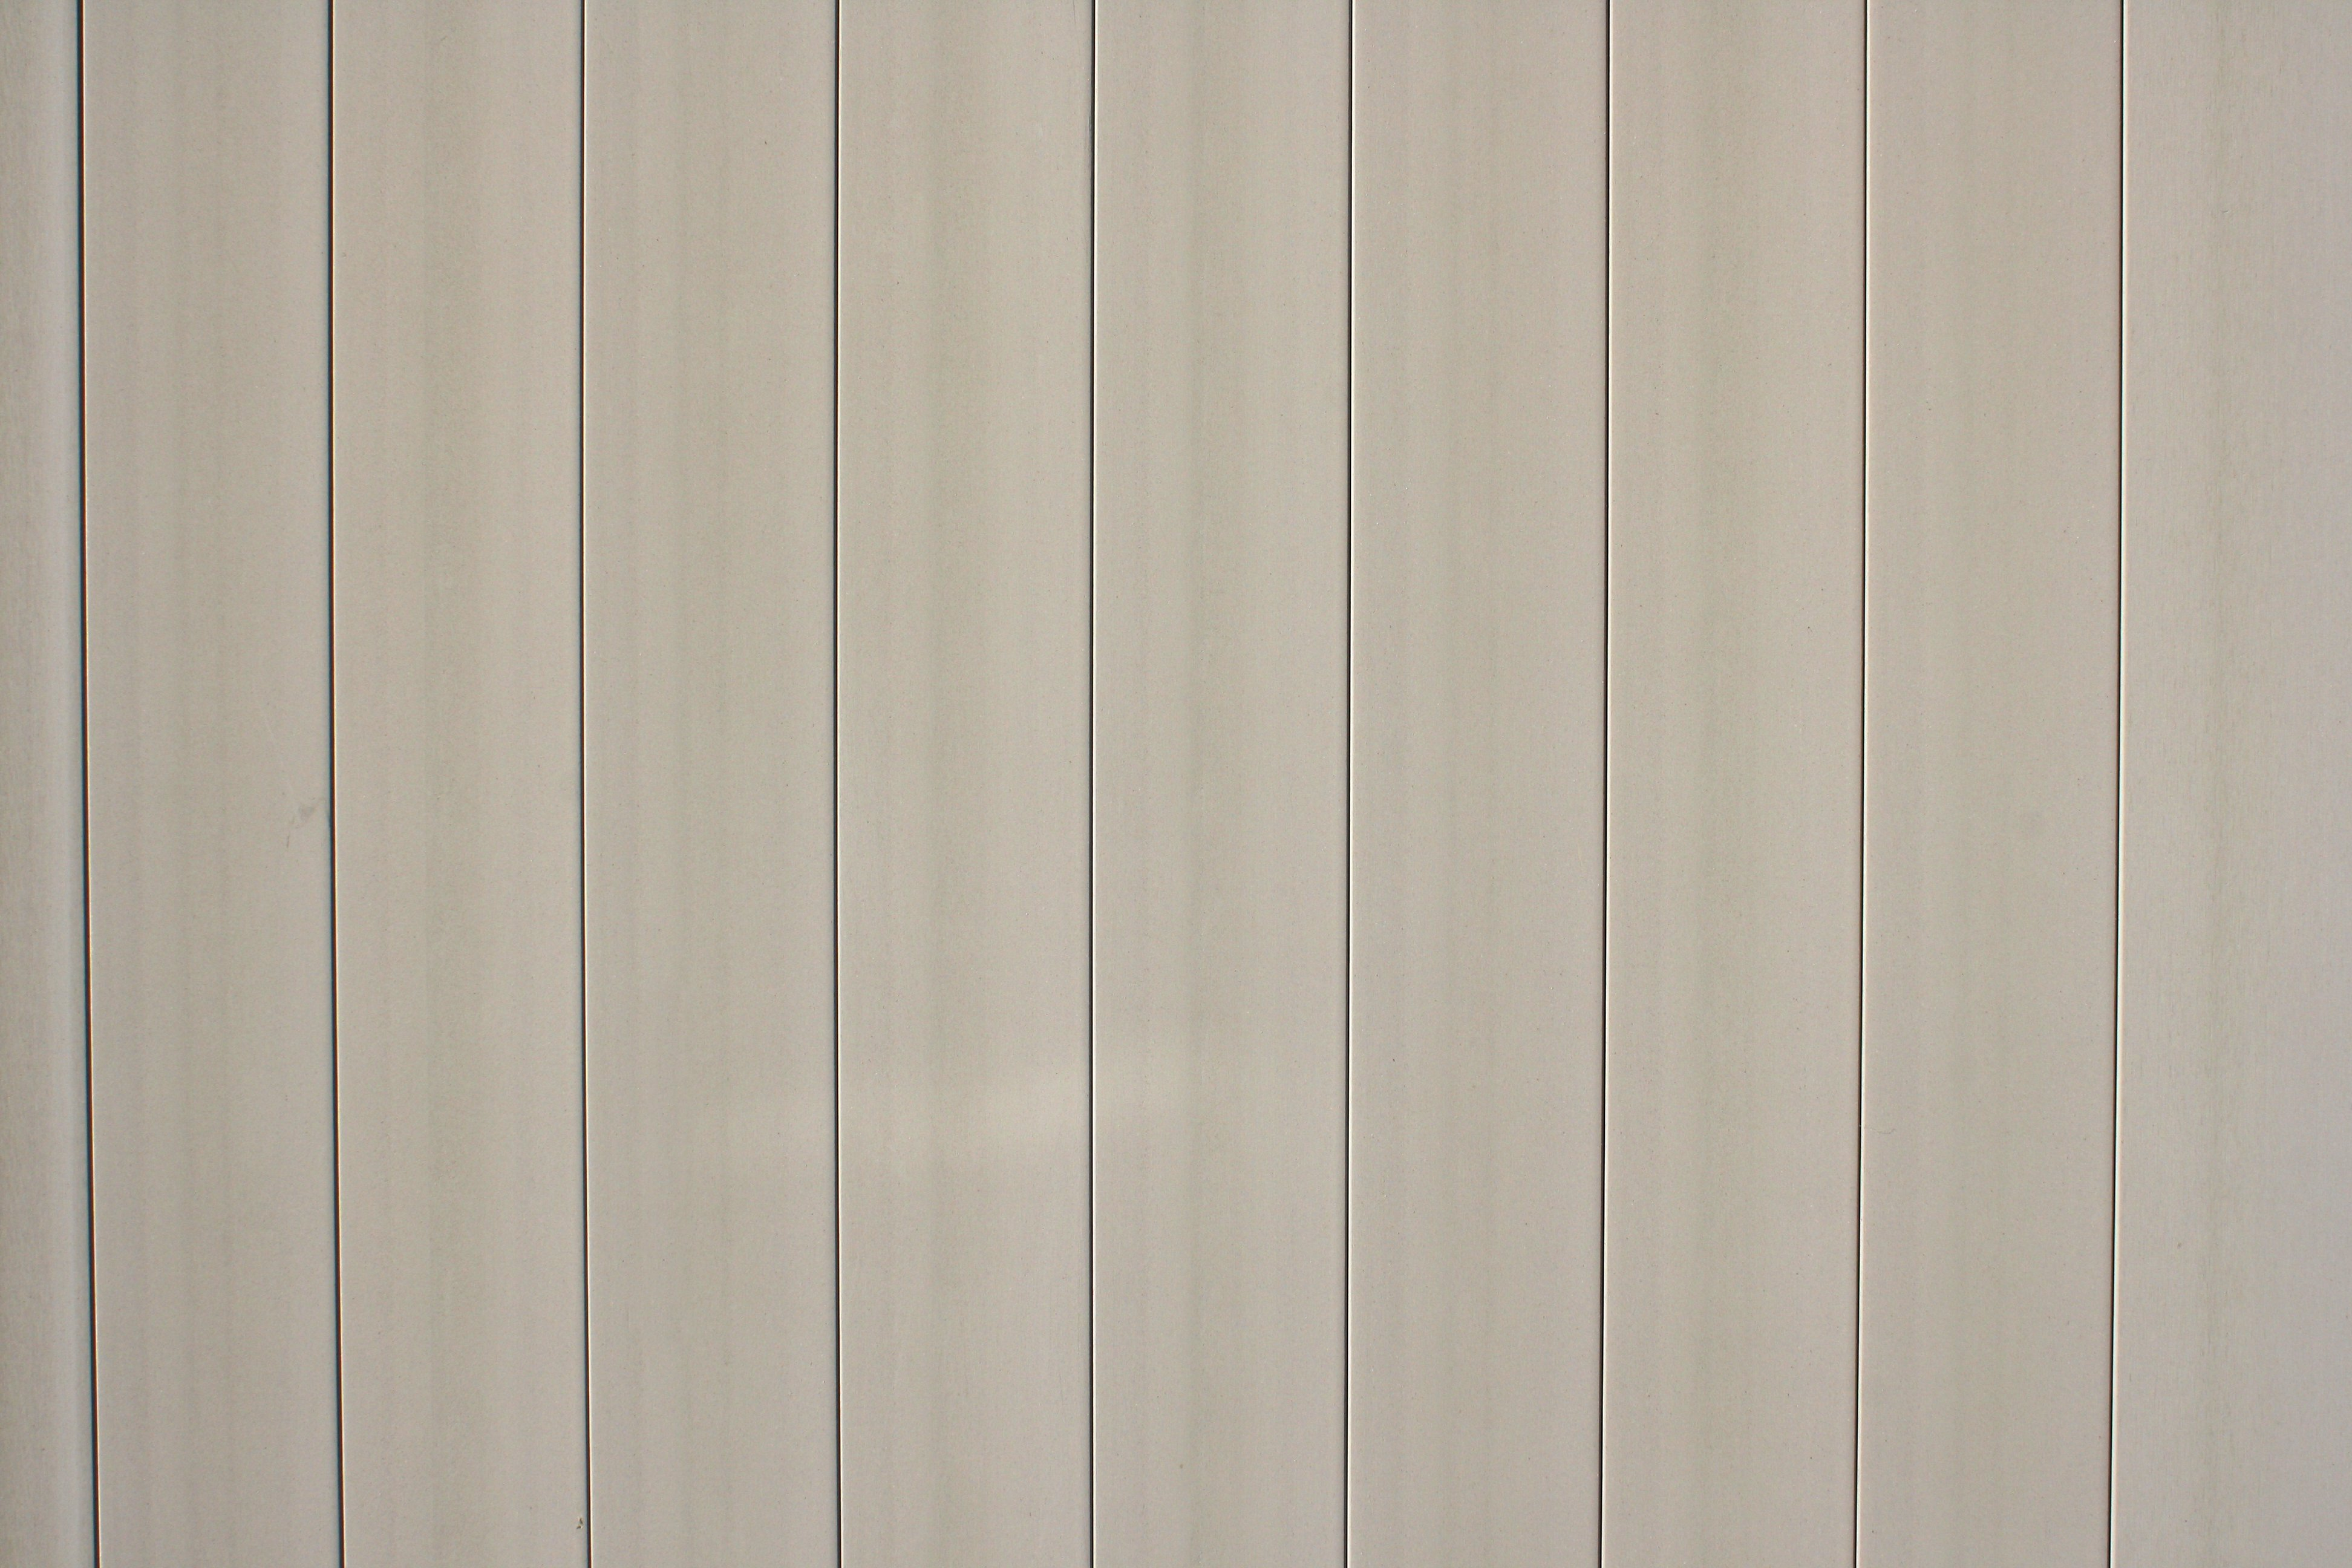 Gray Plastic Fence Boards Texture